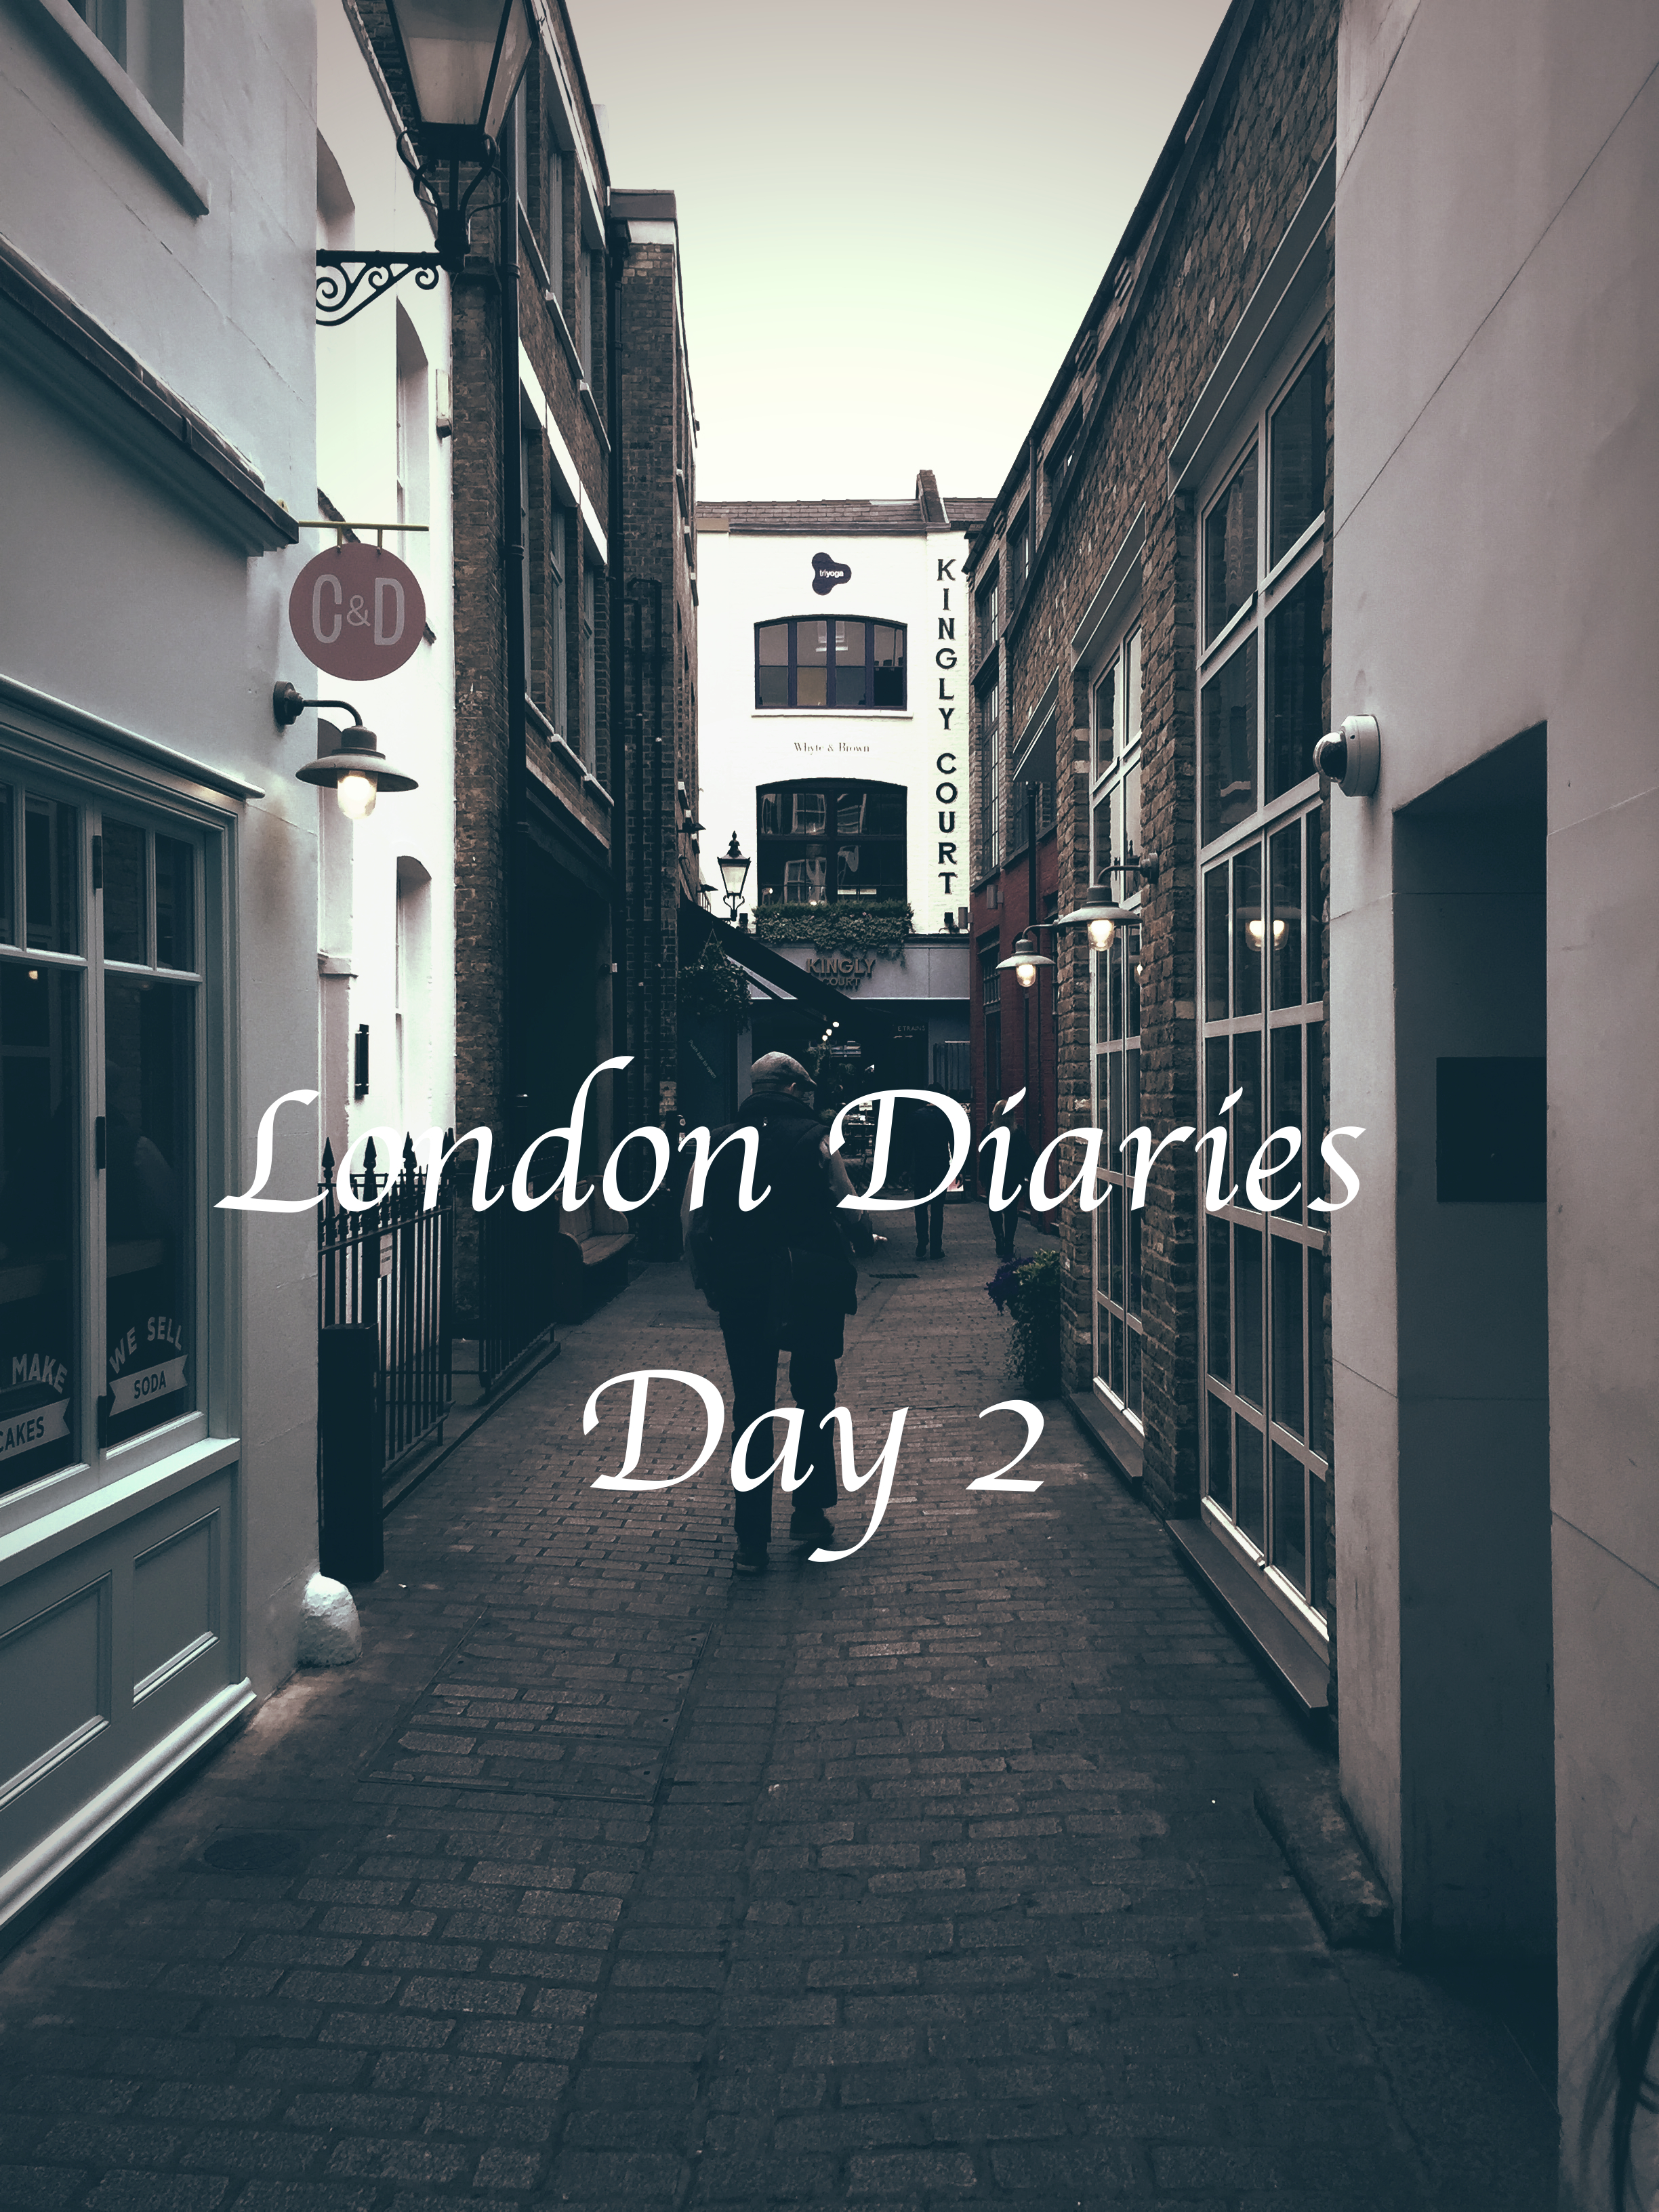 London Diaries Day 2.